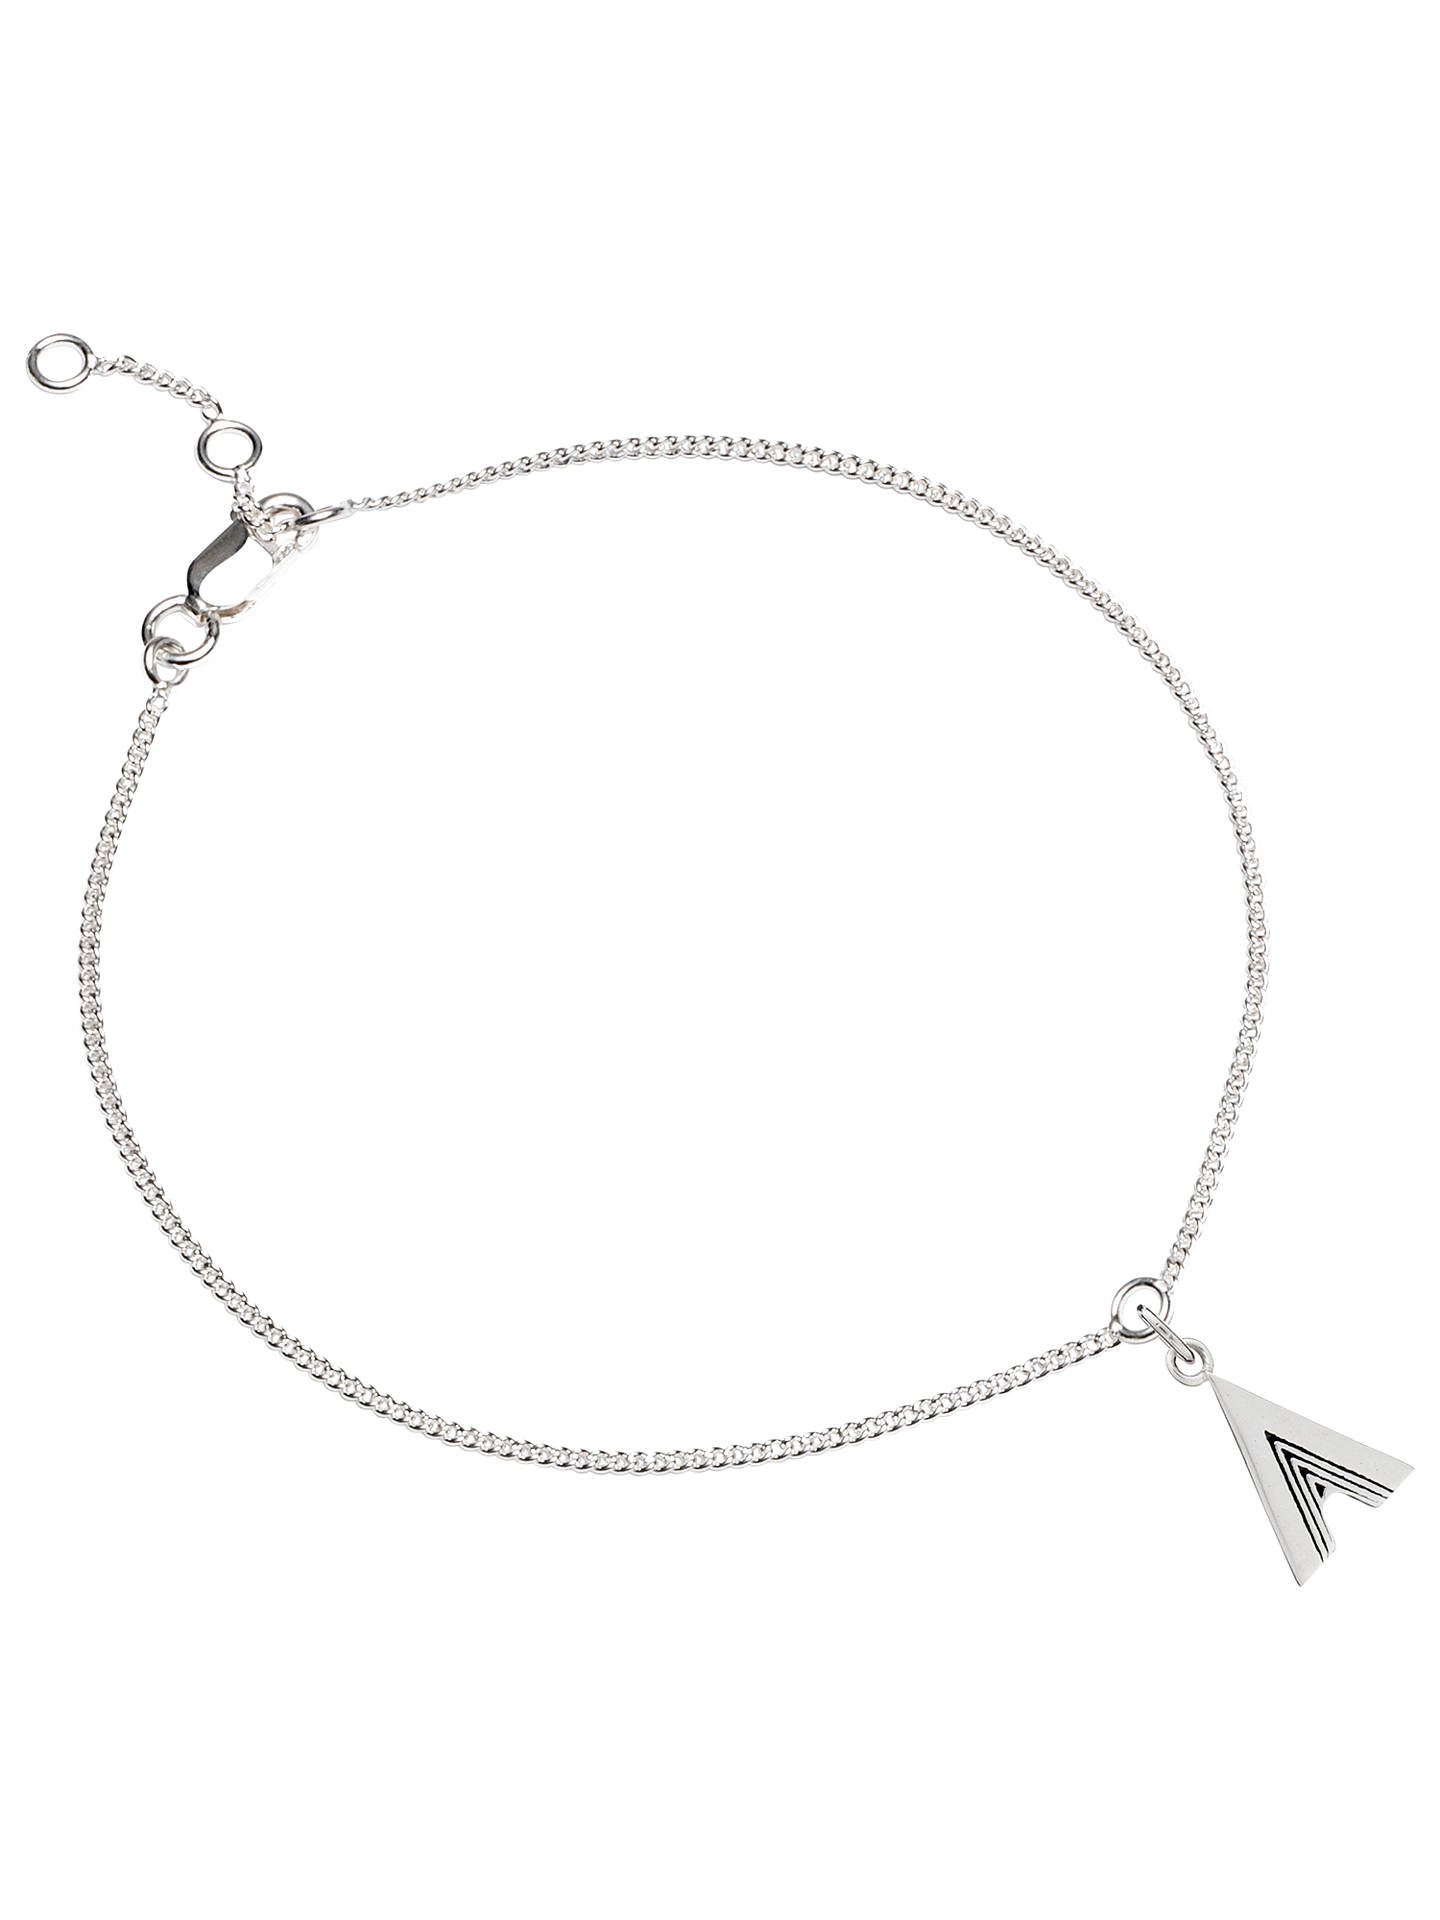 Rachel Jackson London Sterling Silver Initial Charm Bracelet A Online At Johnlewis